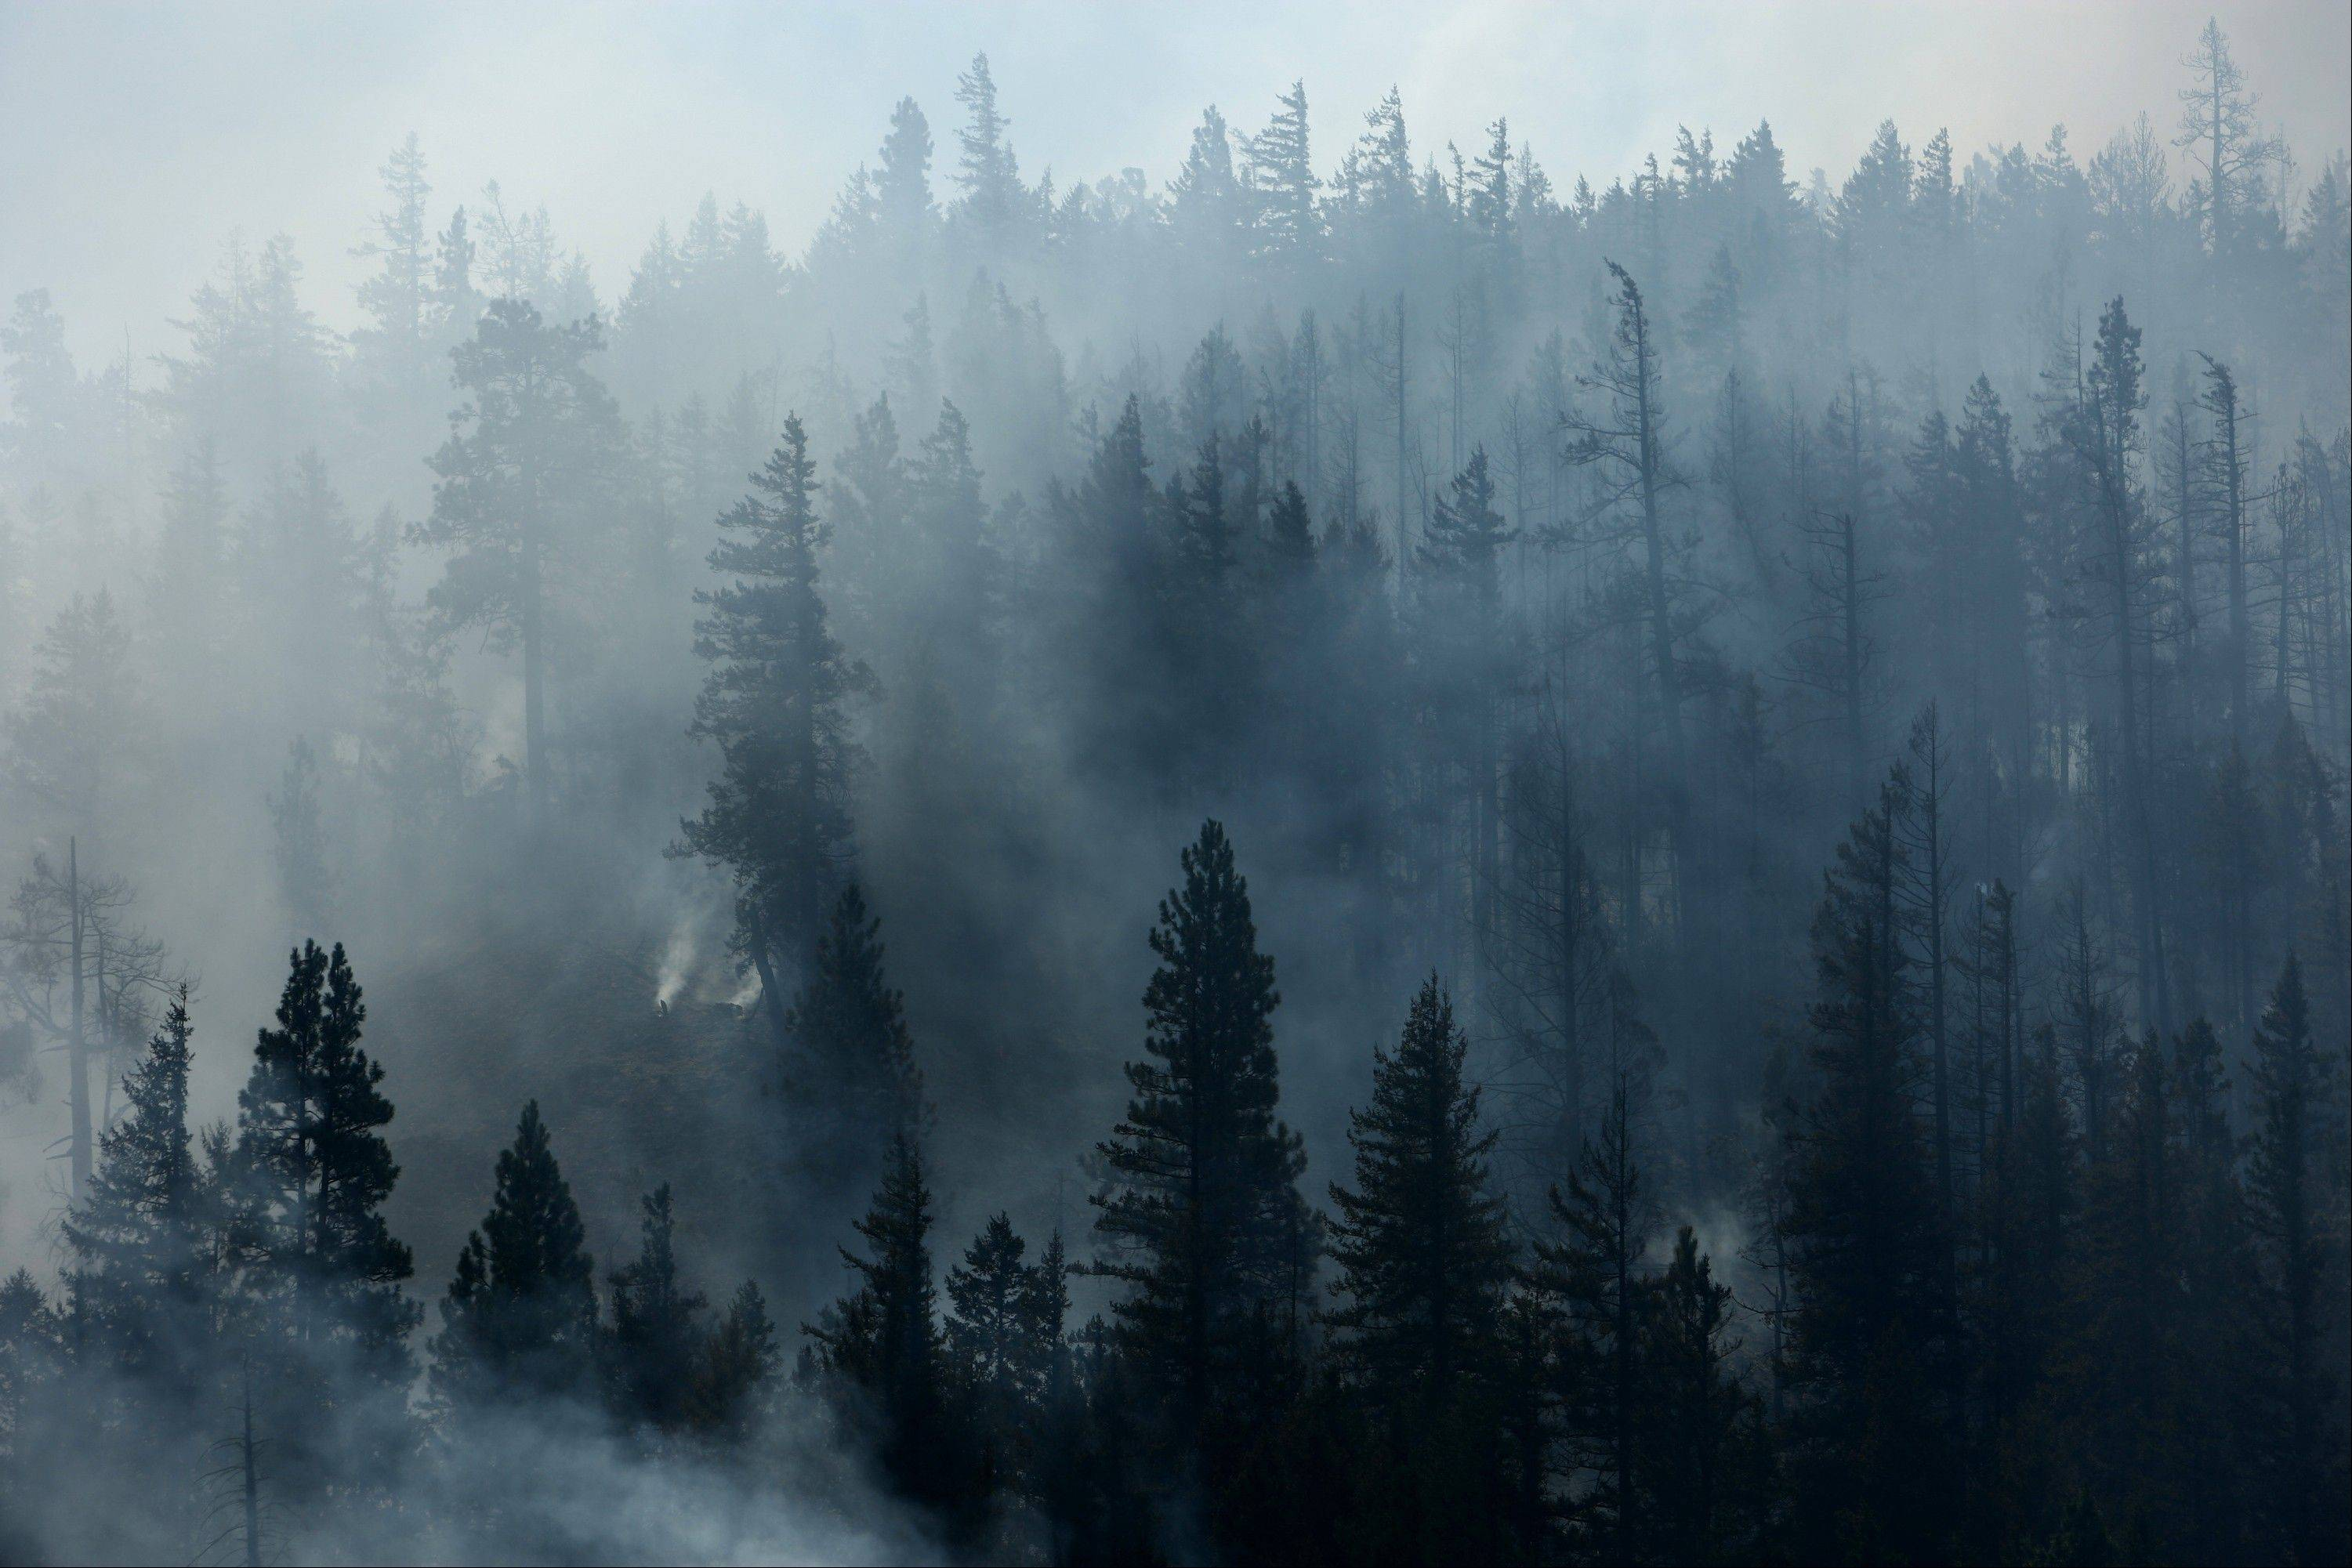 Fire burns above Hidden Valley Ranch where fire crews worked to halt progression of the Taylor Brige Fire on Thursday, August 16, 2012, near Cle Elum, Wash. The Taylor Bridge Fire has forced hundreds to evacuate and has burned dozens of homes near Cle Elum, Wash.